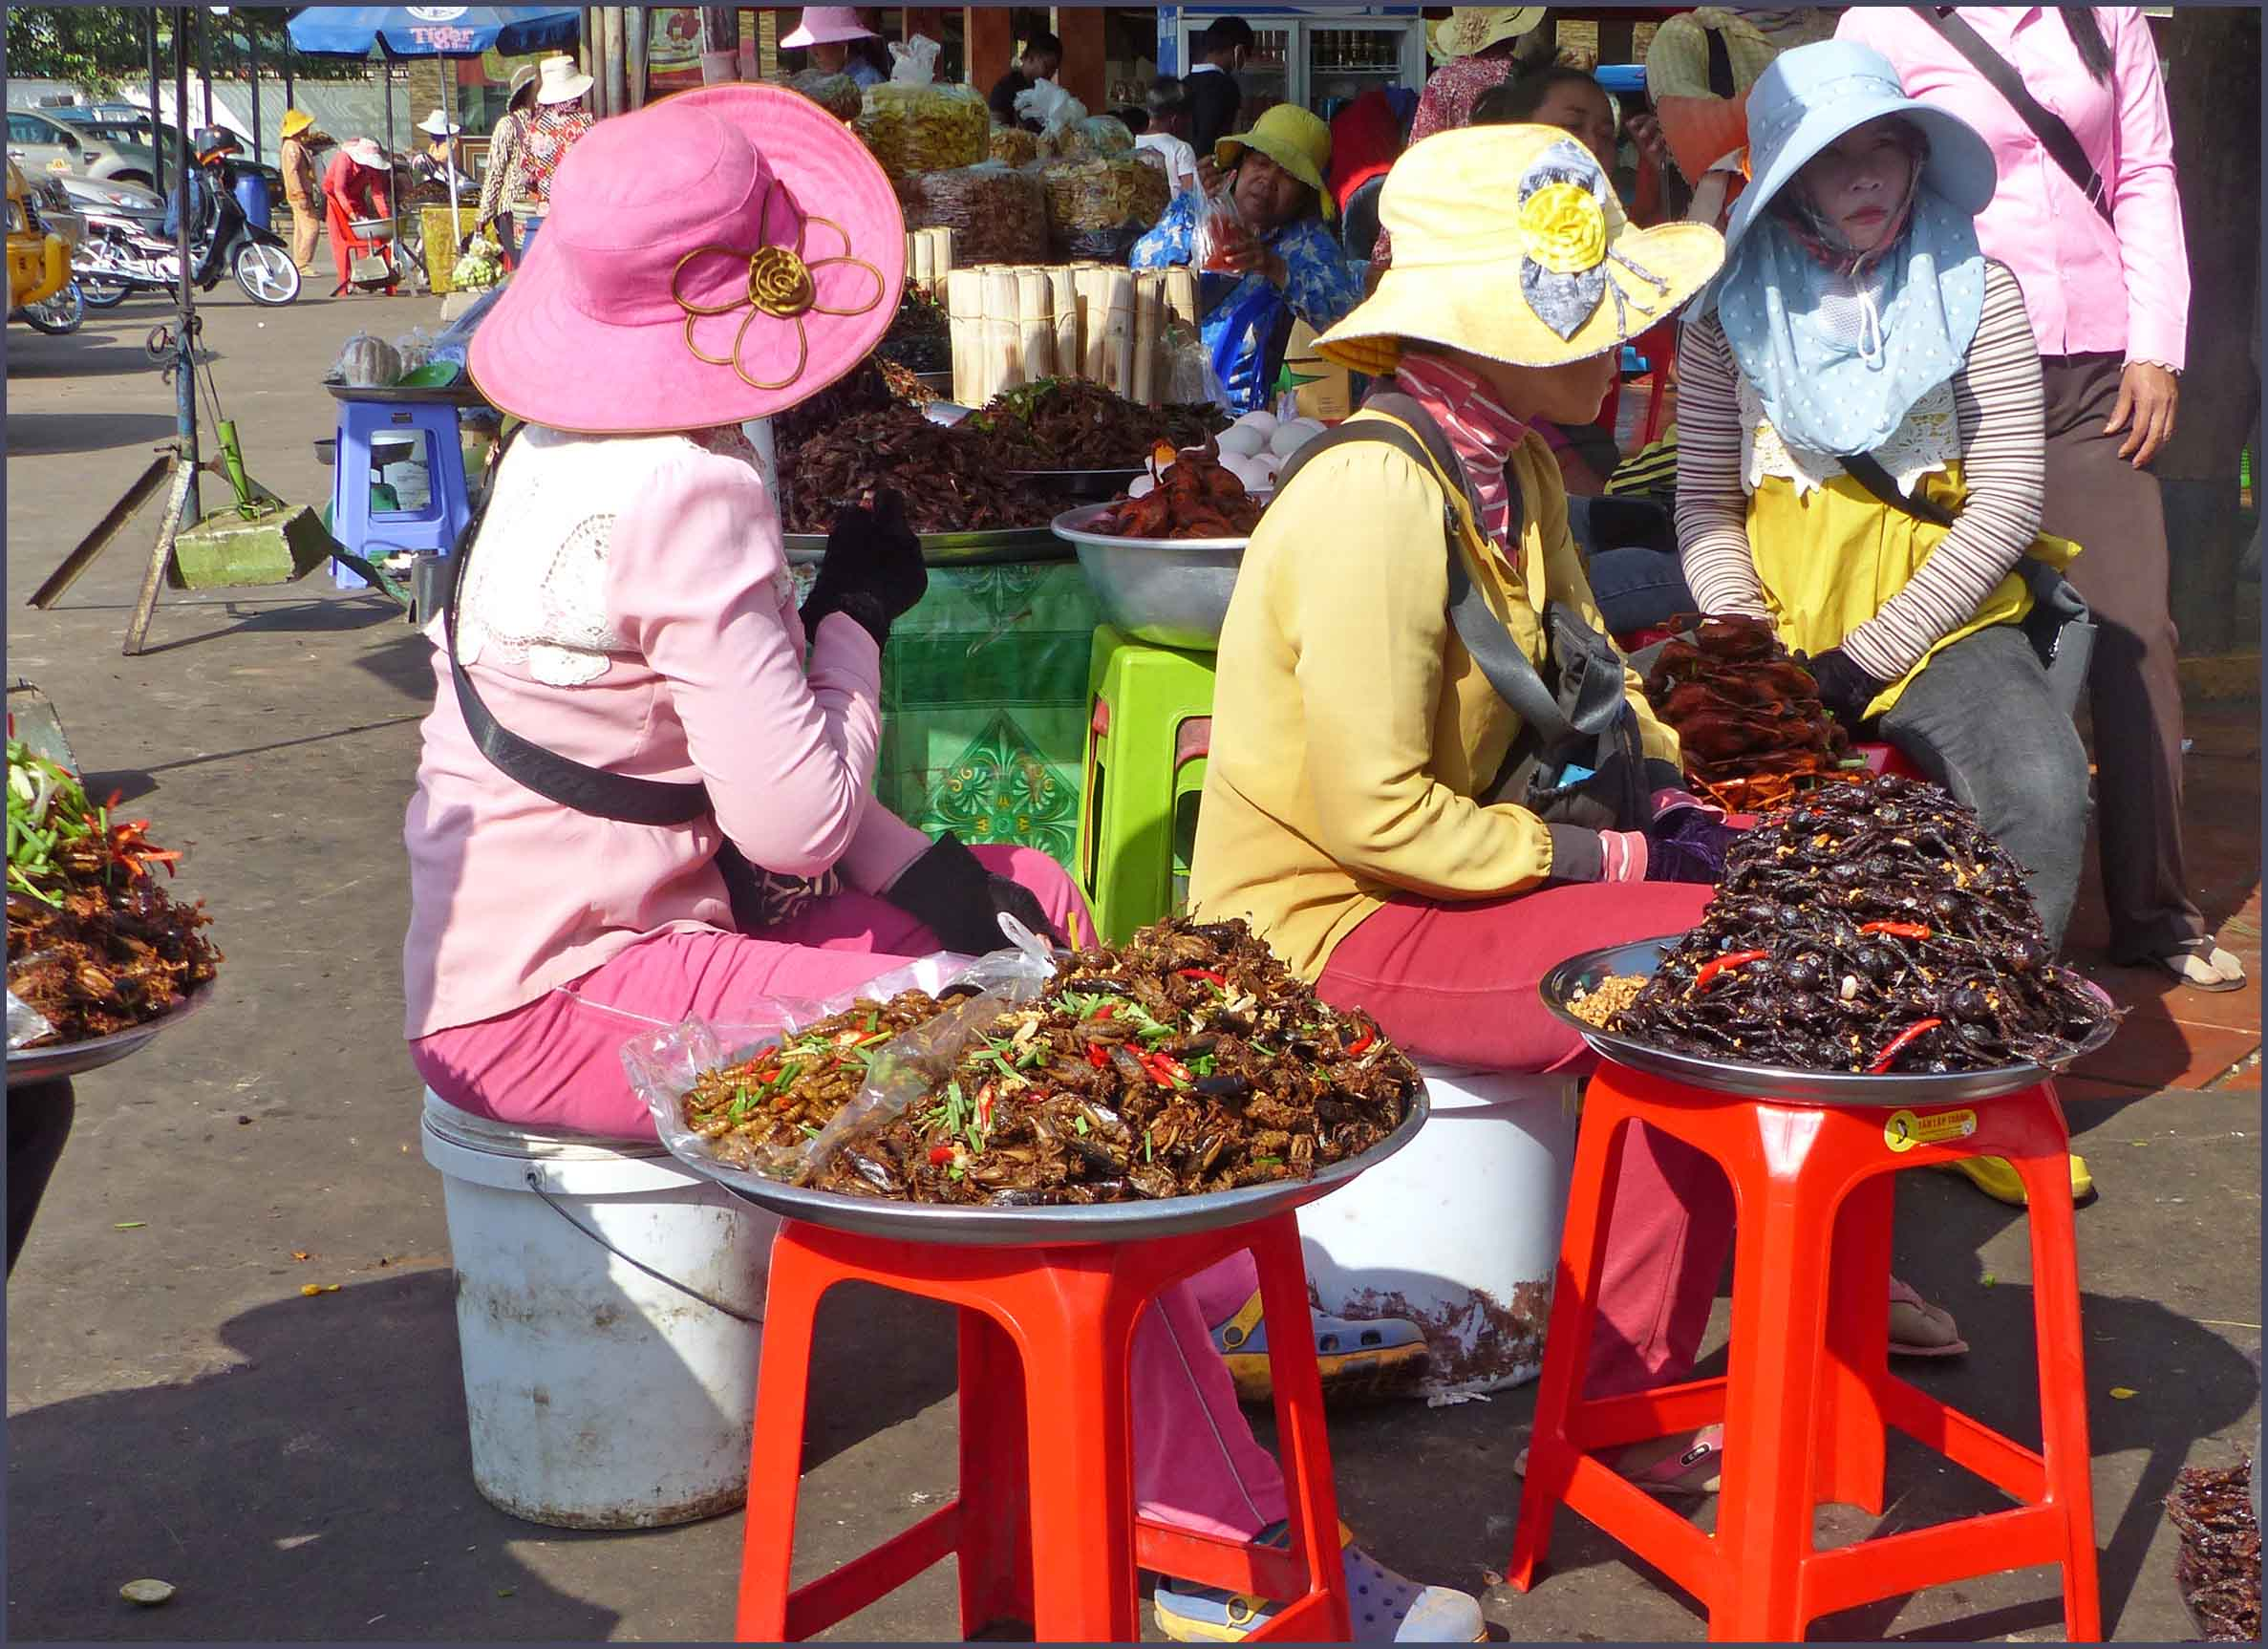 Ladies wearing sunhats sitting by plates of fried insects